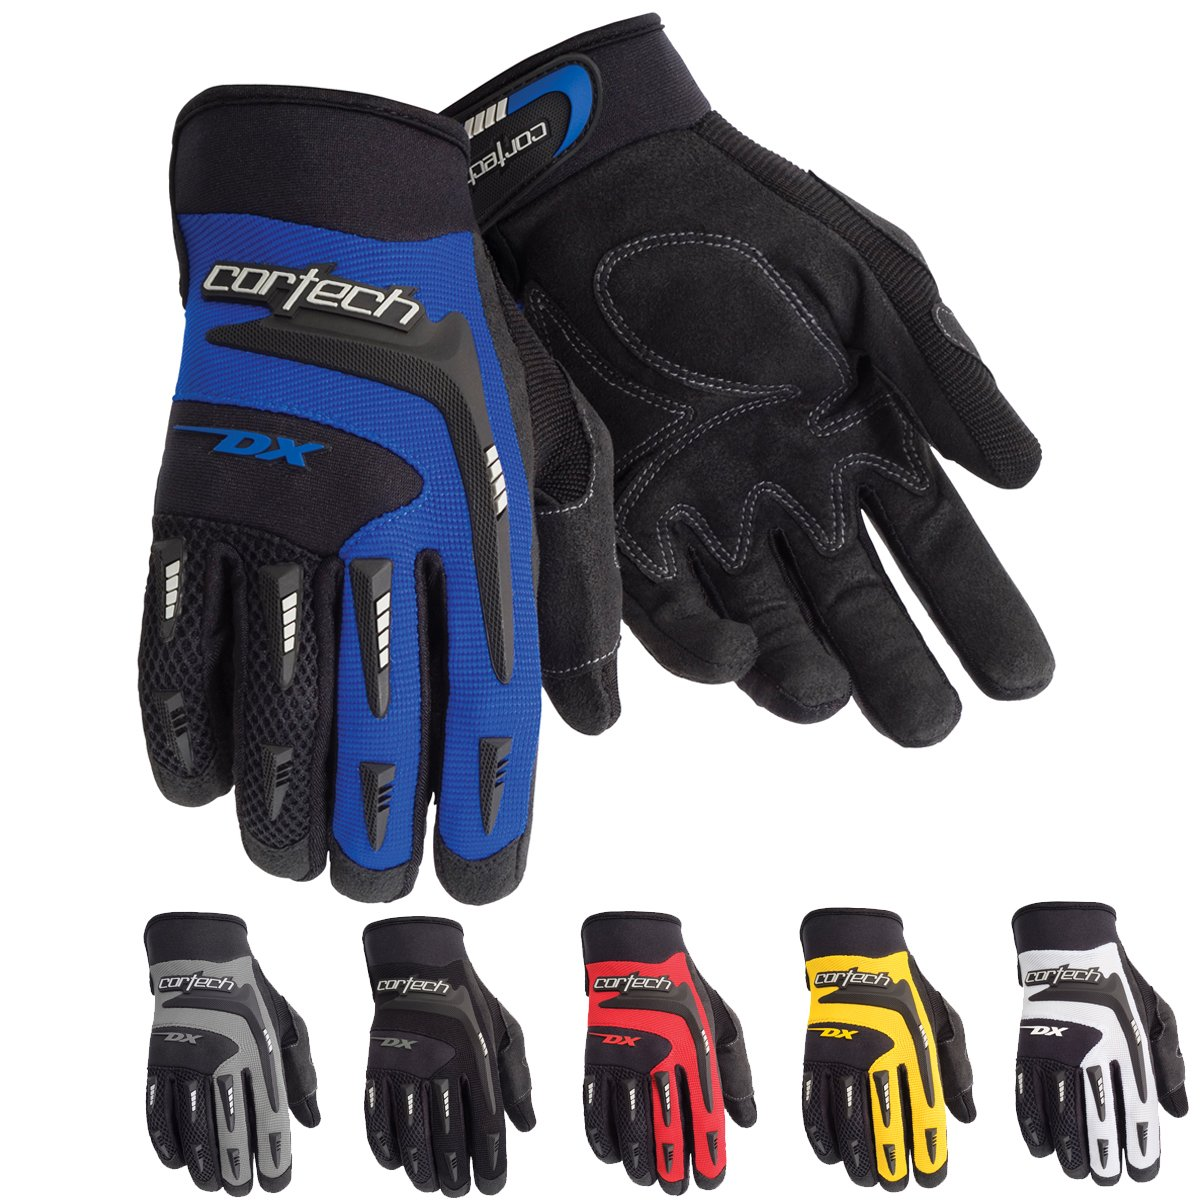 Motorcycle gloves tight or loose - The Cortech Dx 2 Motorcycle Gloves Are Designed To Be A Lightweight And Rugged Option For Bikers Who Want A Stylish Glove Option To Fit Their Gear